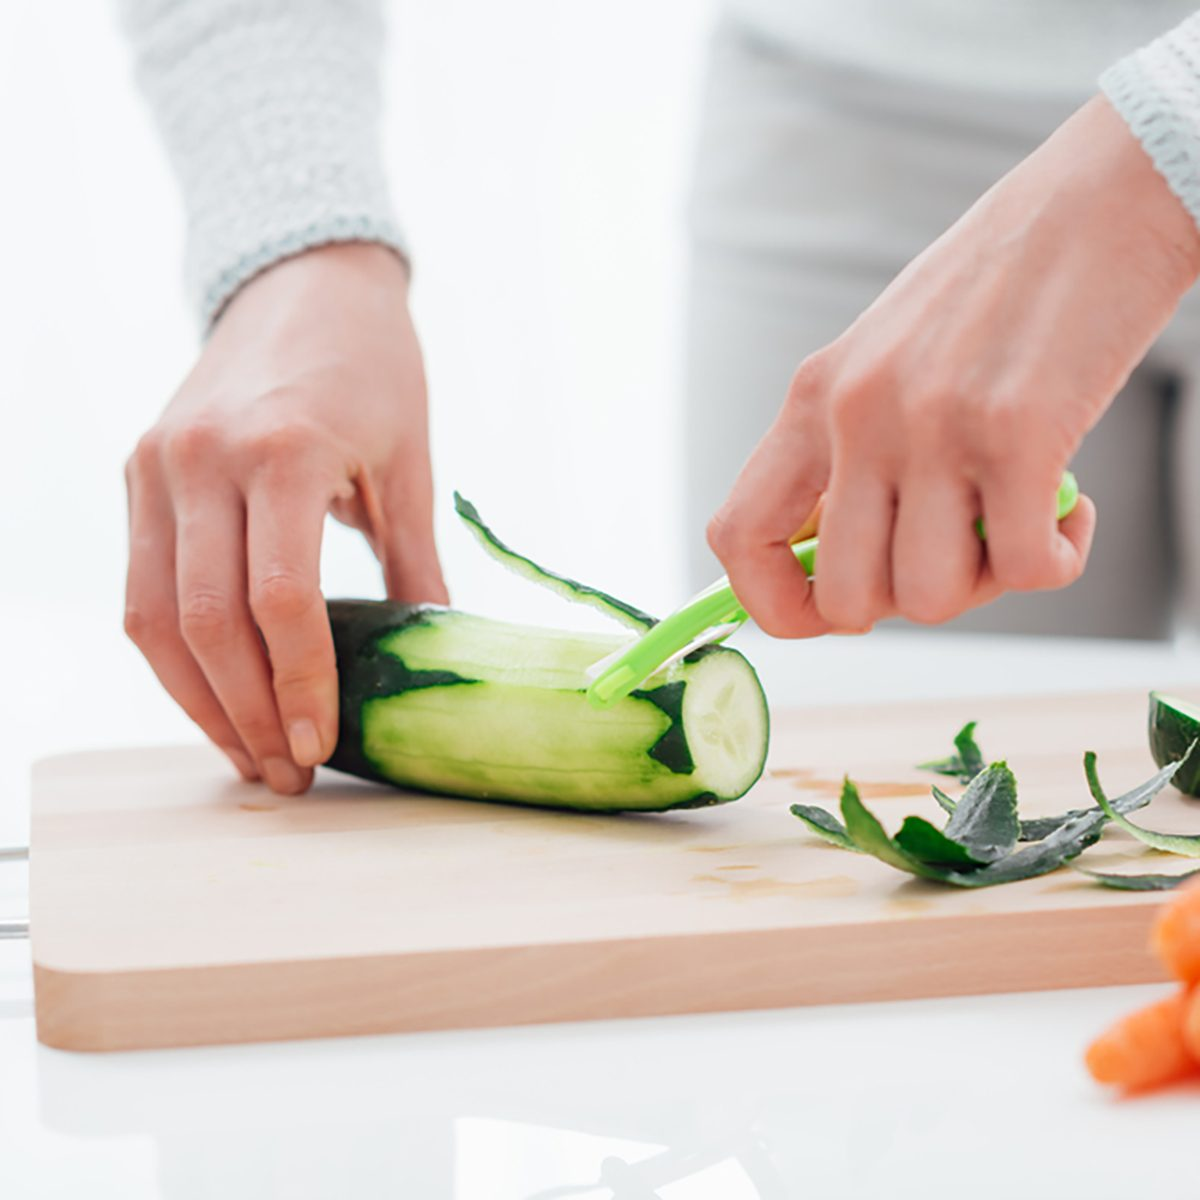 Woman cooking healthy food in her kitchen, she is peeling a fresh cucumber on the chopping board